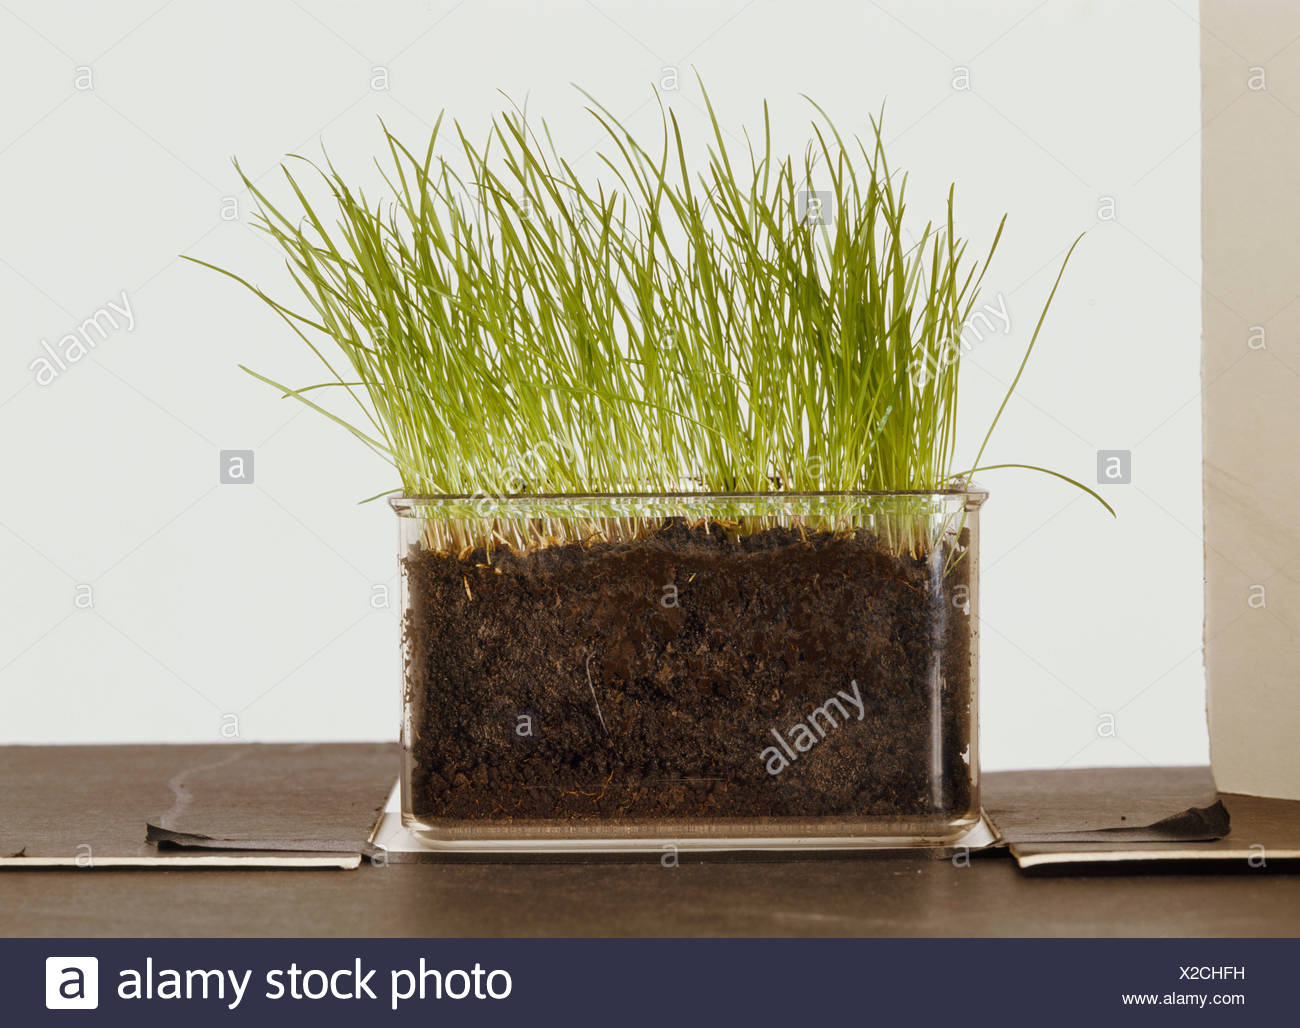 Grass growing in clear container - Stock Image